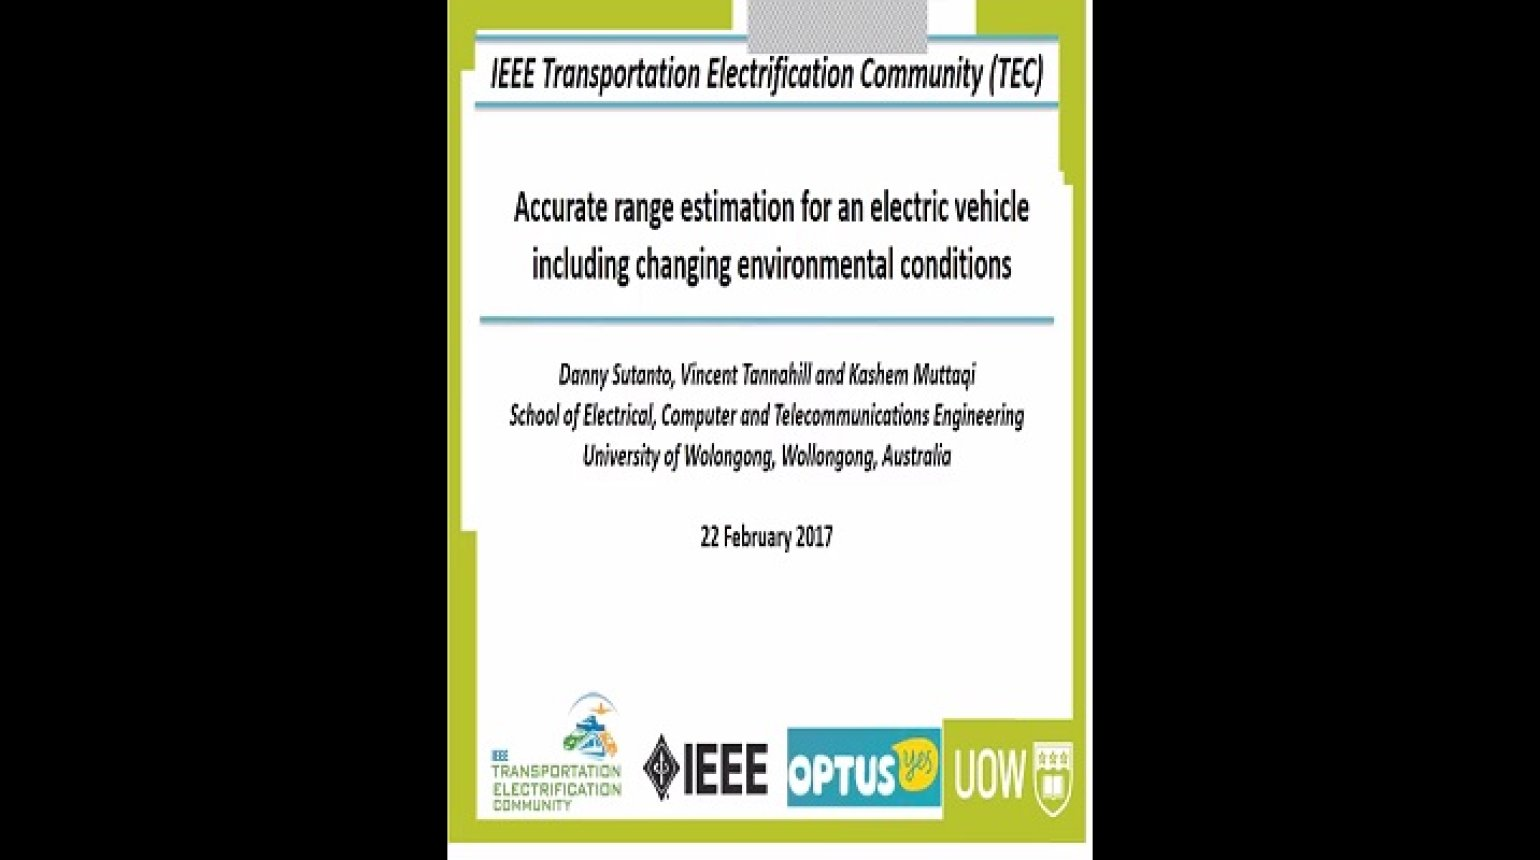 Video - Accurate range estimation for an electric vehicle including changing environmental conditions